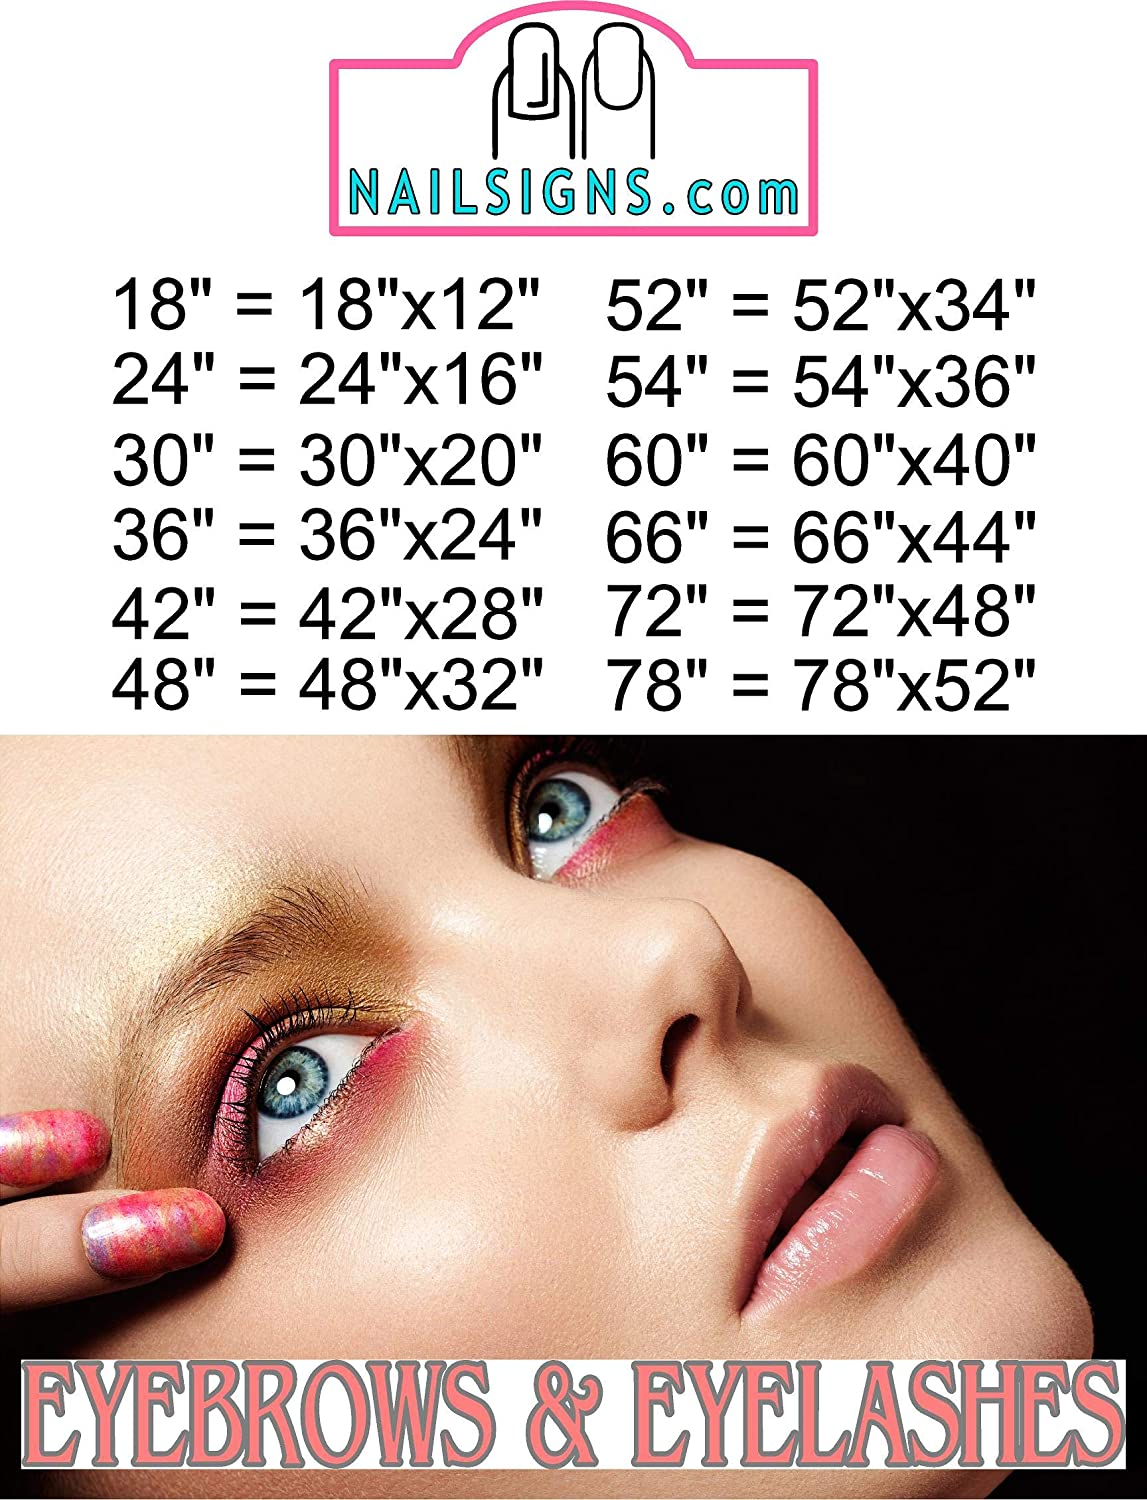 NAILSIGNS.com New arrival Eyebrows XIII Eyelashes Salon Services Sign Store Advert